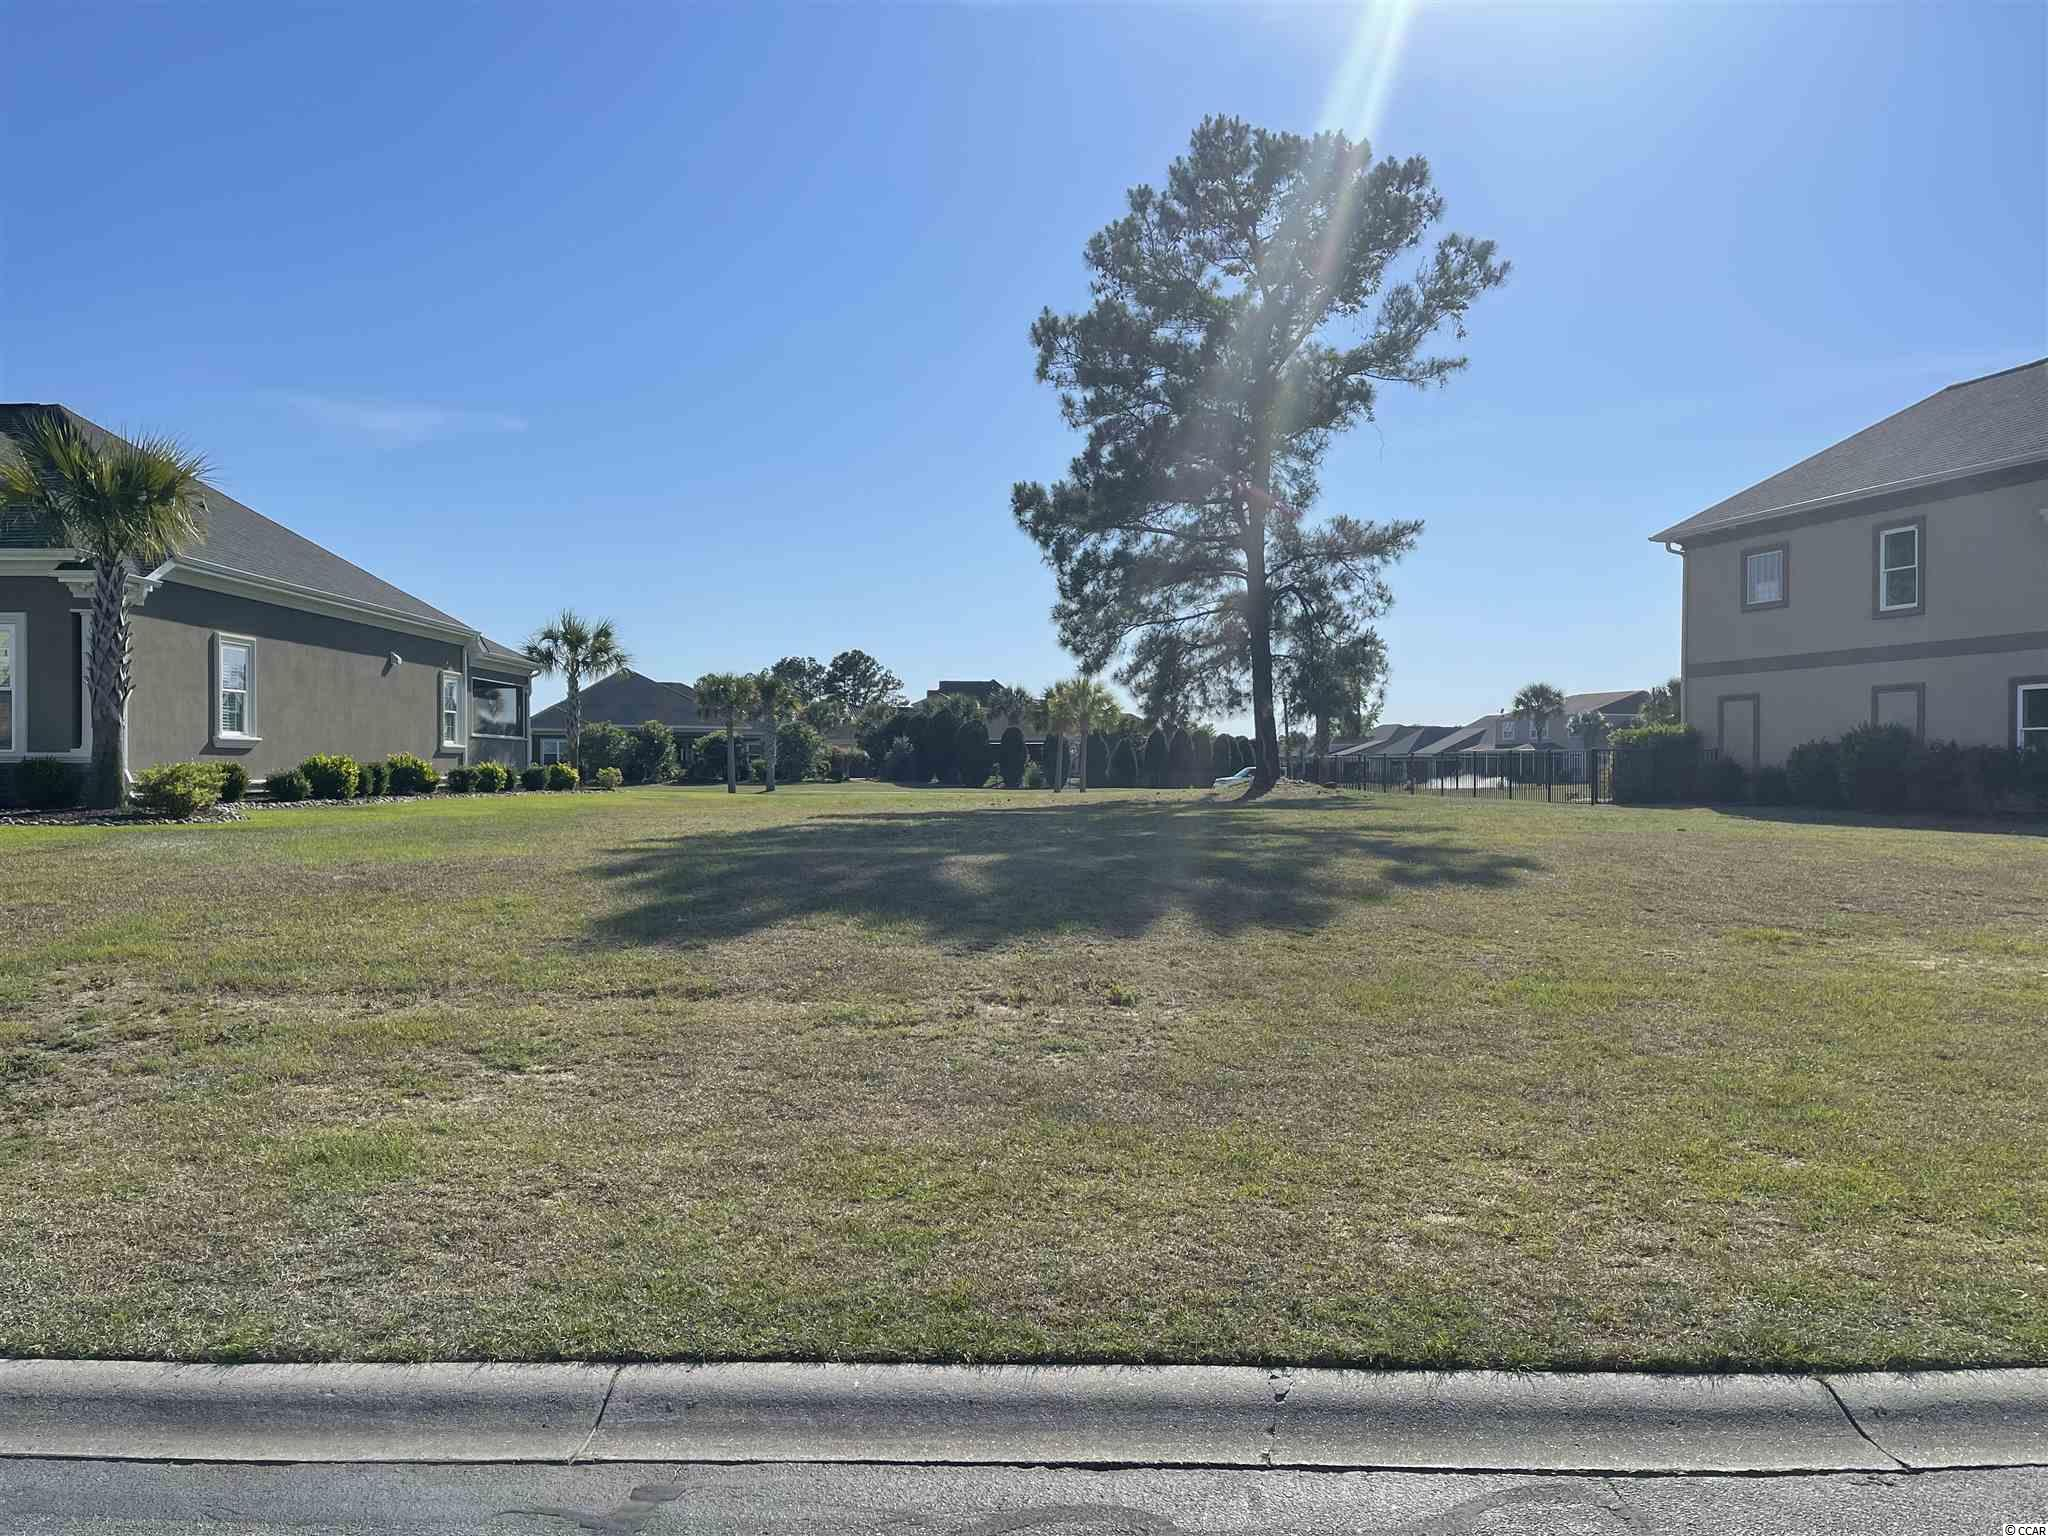 Welcome home to the prestigious community of The Bluffs On The Waterway! A beautiful custom home community that sits along the Intracoastal Waterway. Take advantage of all the amazing amenities including two beautiful clubhouses, pools, tennis courts, playground and boat storage. The community offers direct boat access from the private community boat ramp or just sit back and enjoy watching the boats go by on the community dock. This gated community is close to everything! Dining, Entertainment, Shopping and the Beach all within a short drive. Bring your own builder. There is no time frame on when you have to start!